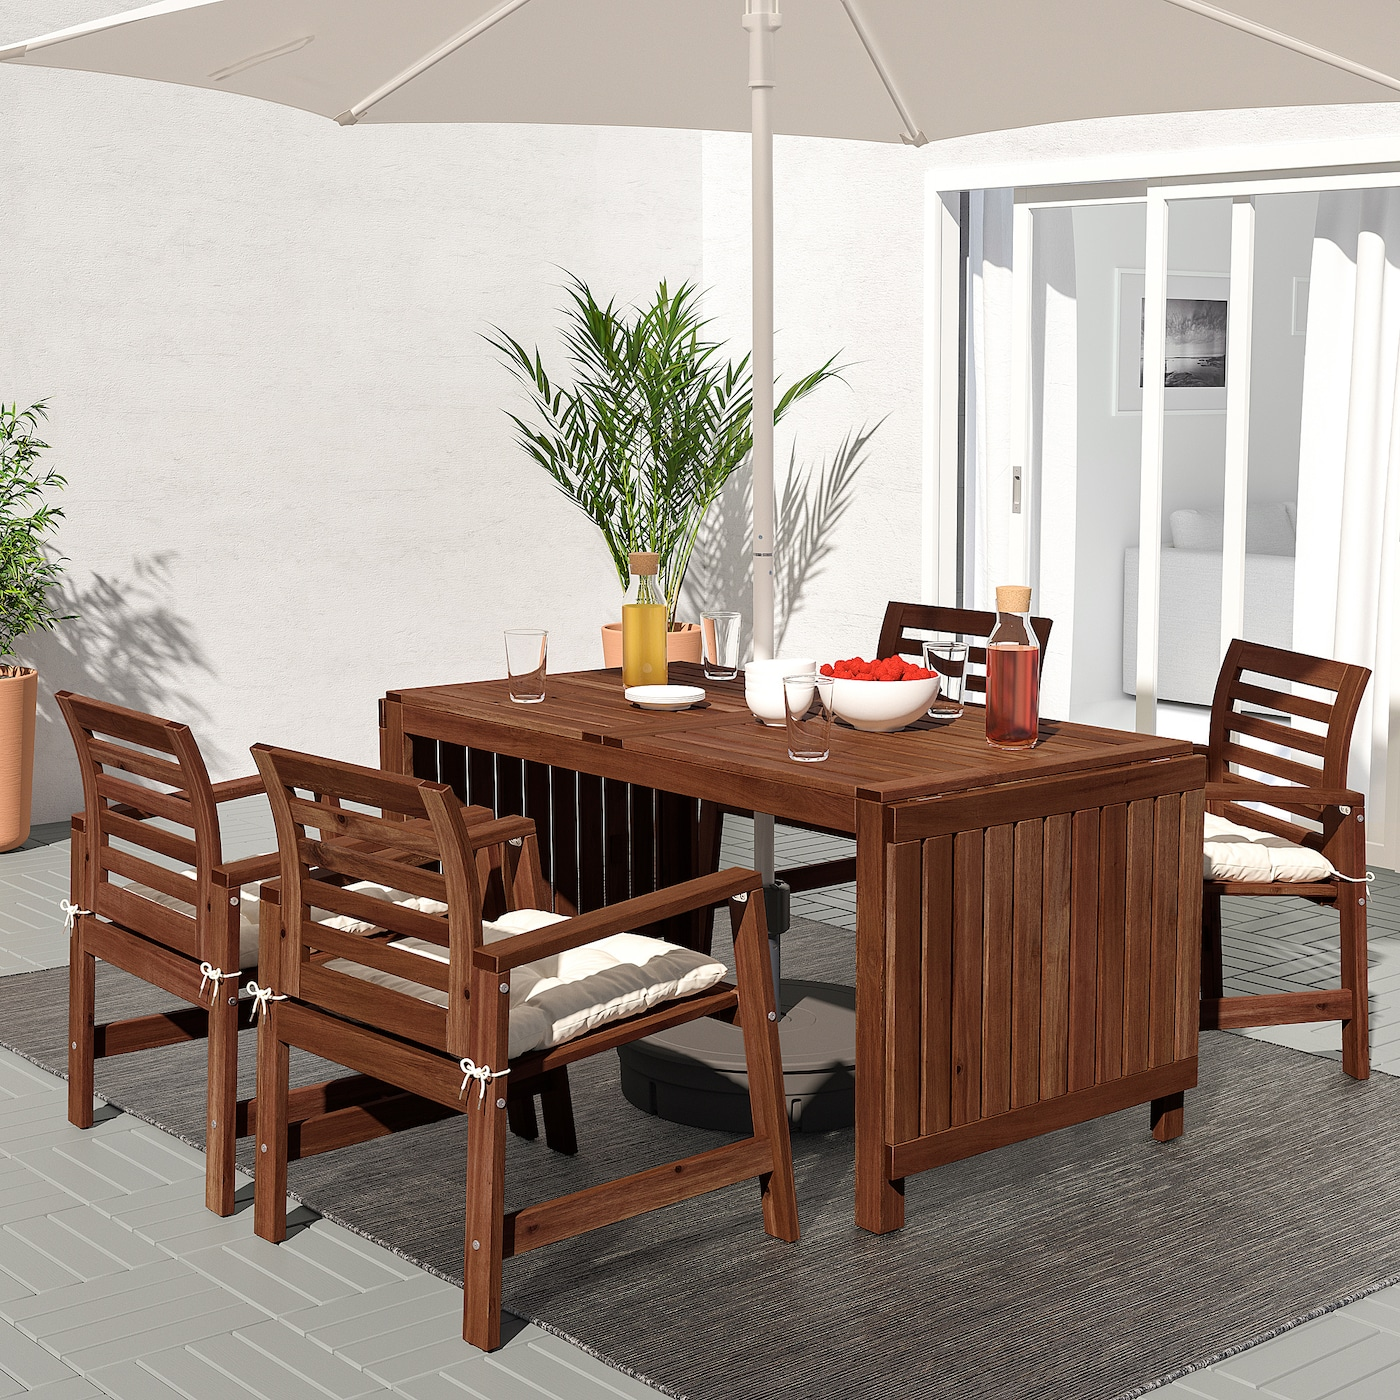 ÄPPLARÖ Chair with armrests, outdoor - brown stained